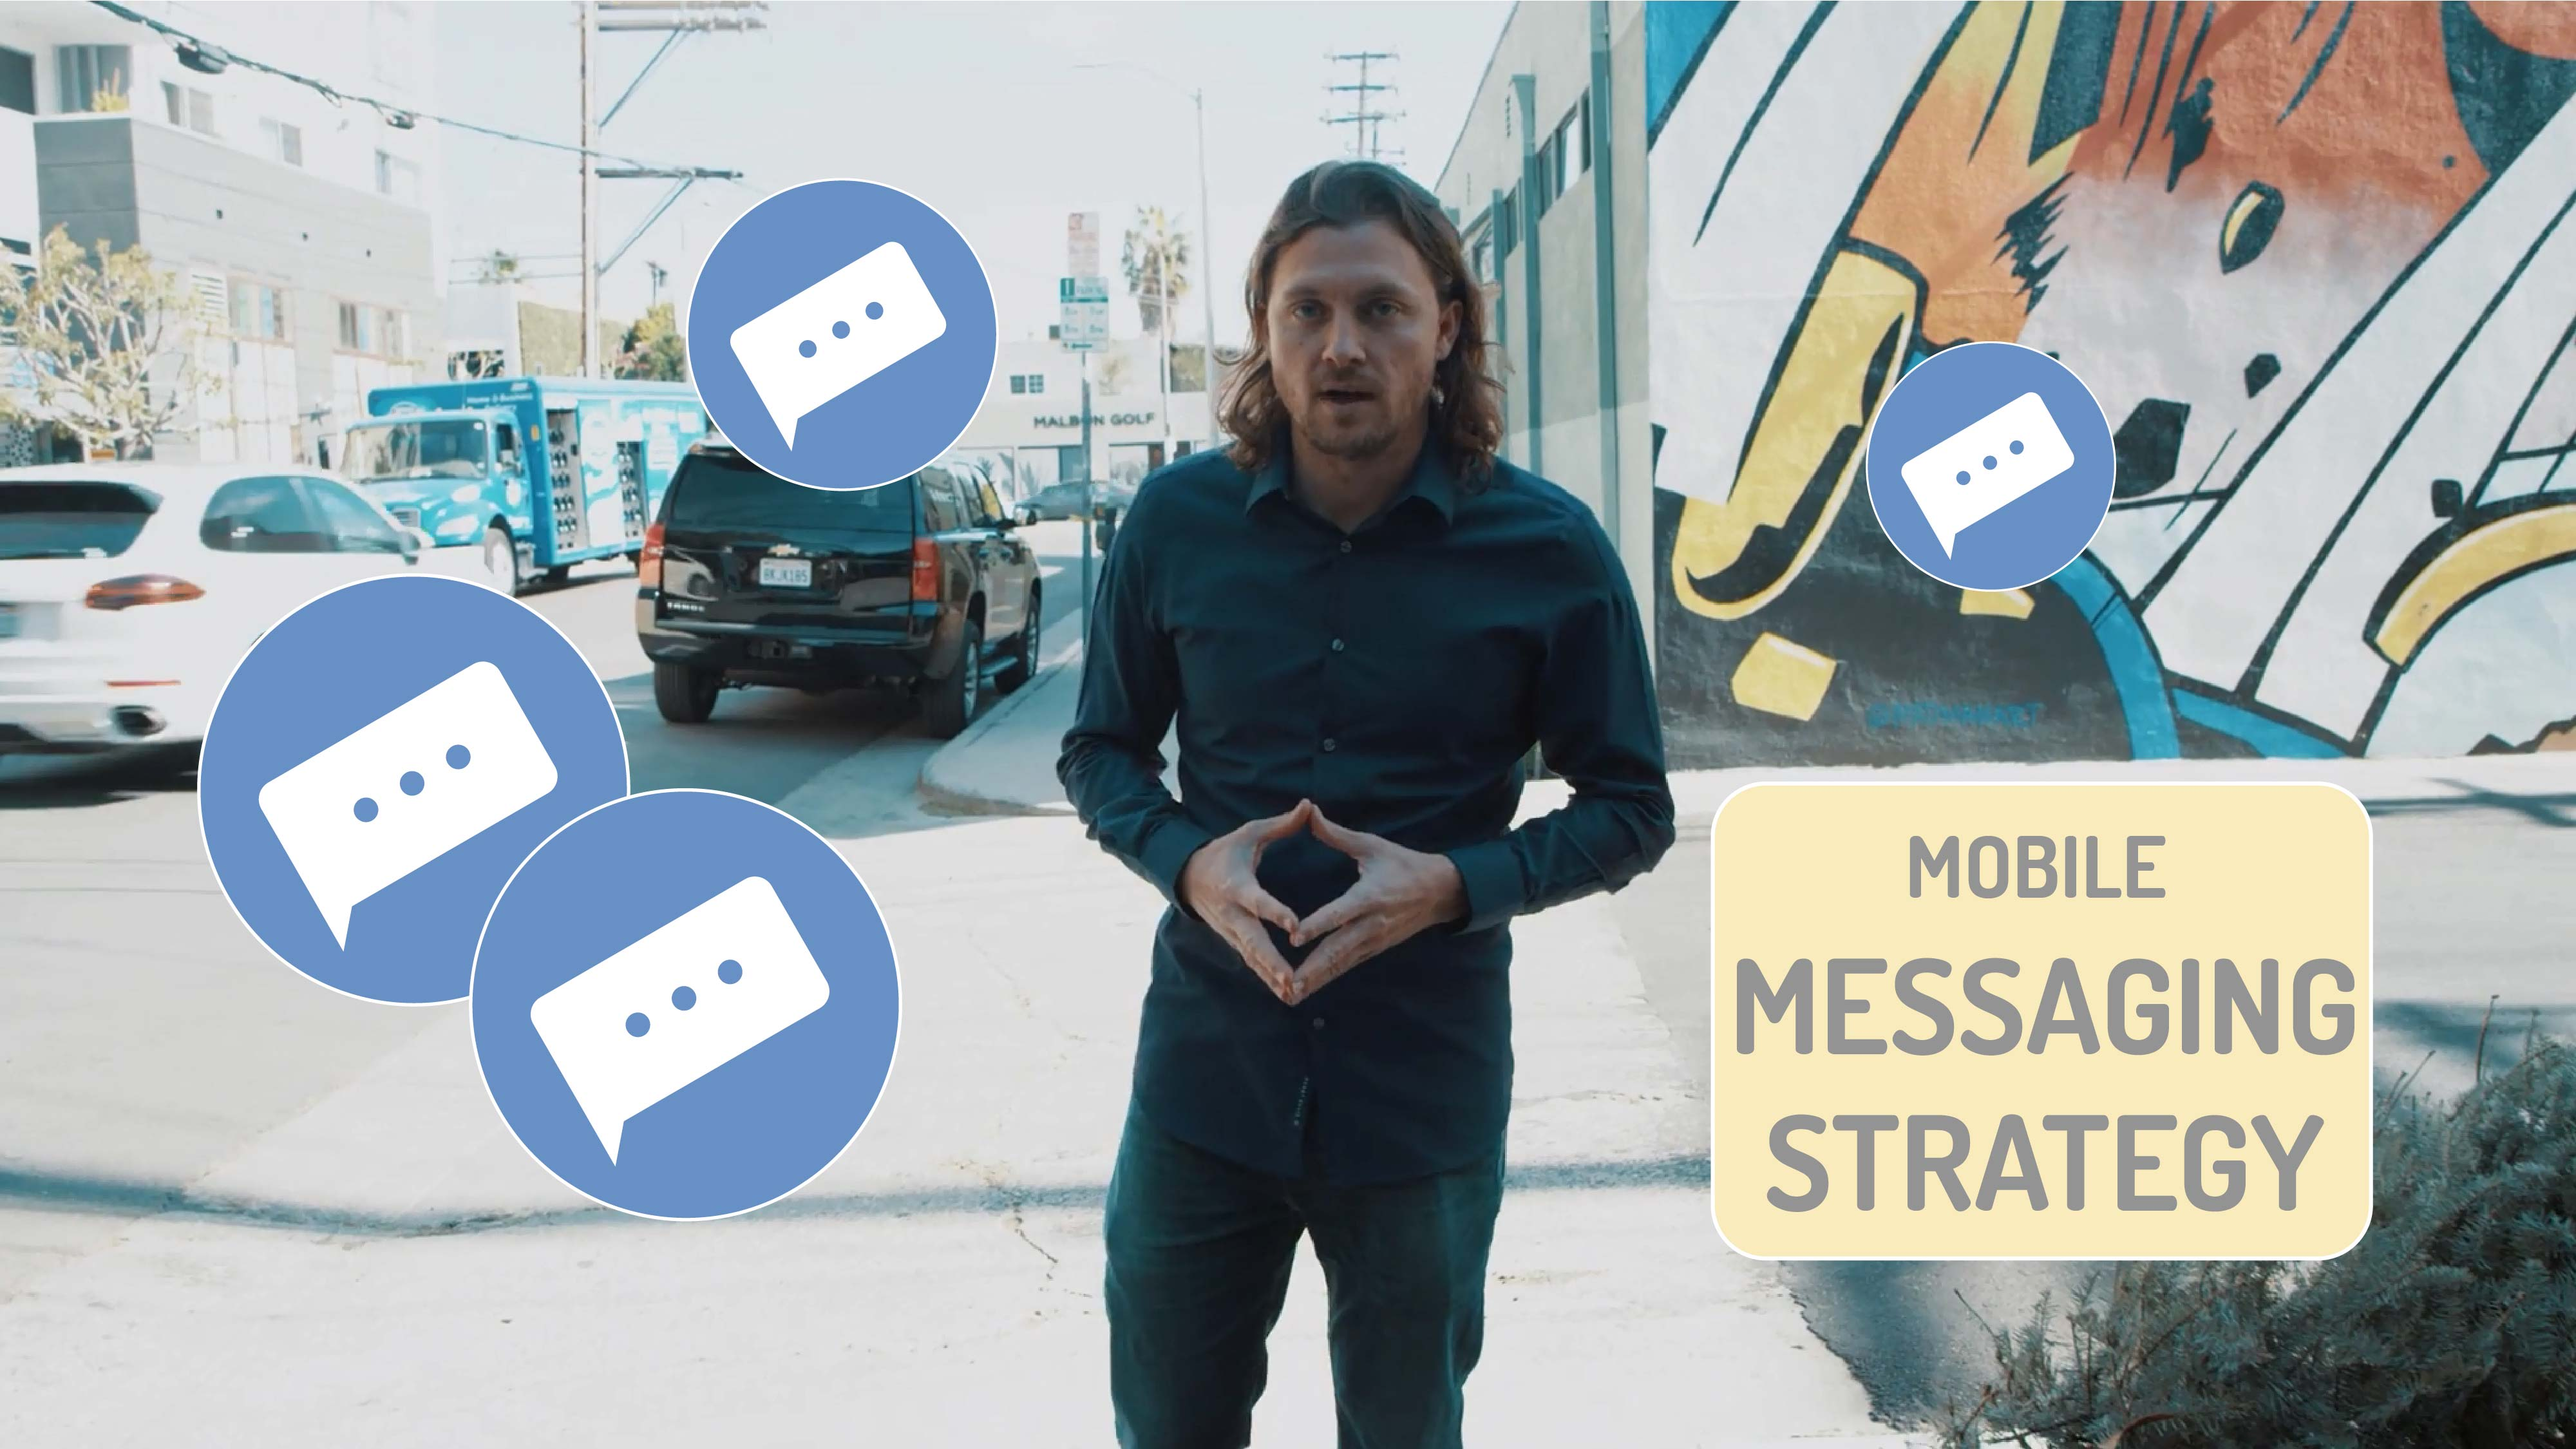 Mobile messaging strategy - Marketing Video